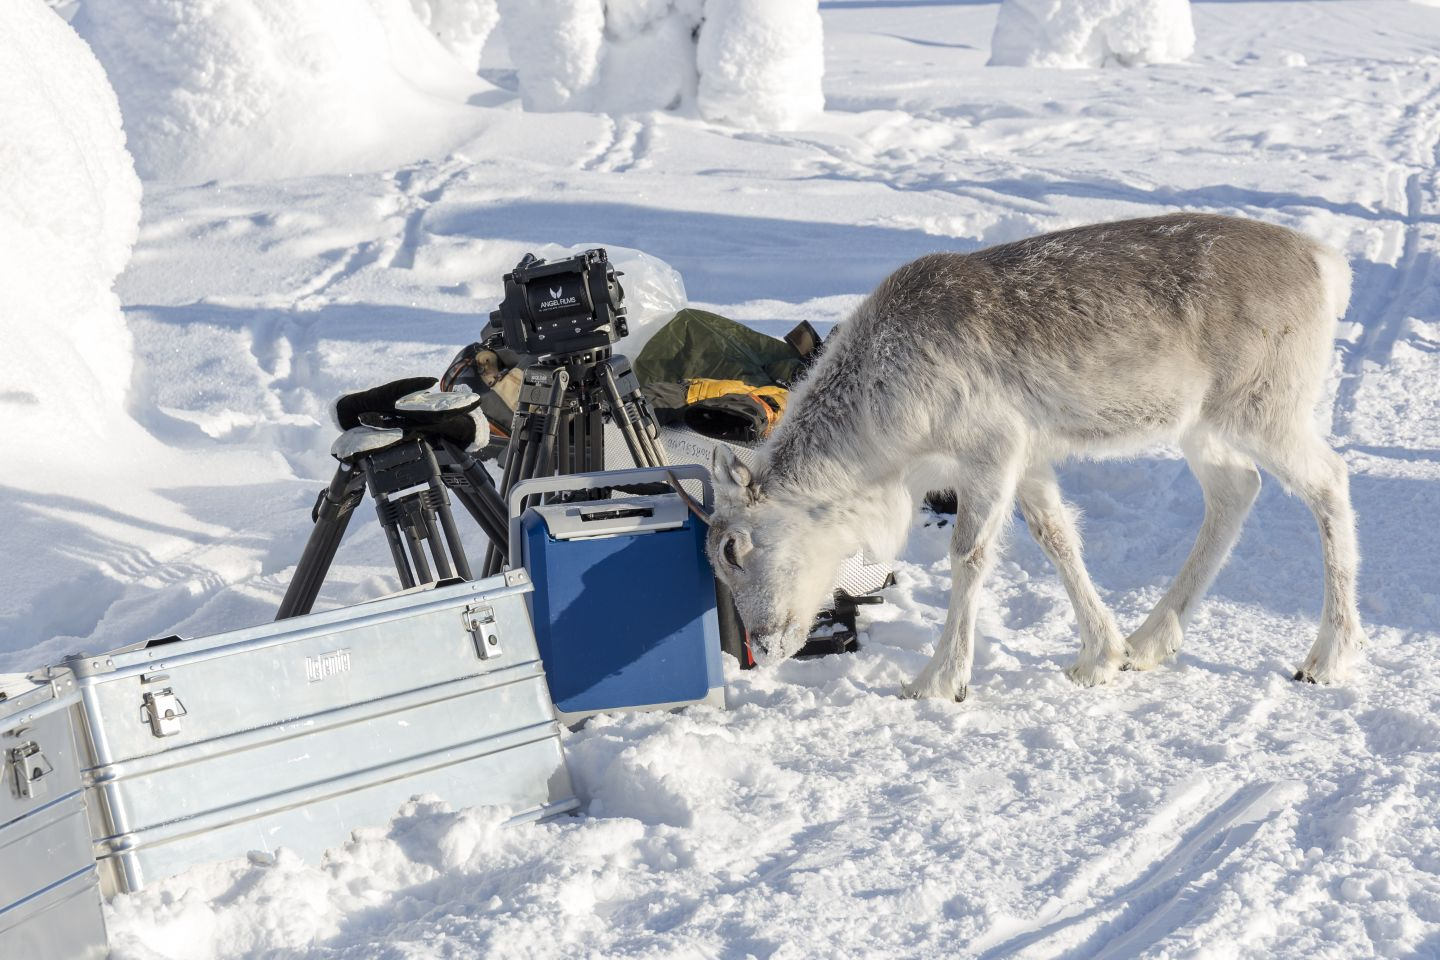 Ailo the reindeer is curious about filming in Lapland (or maybe he just wants to rub his antlers against something)